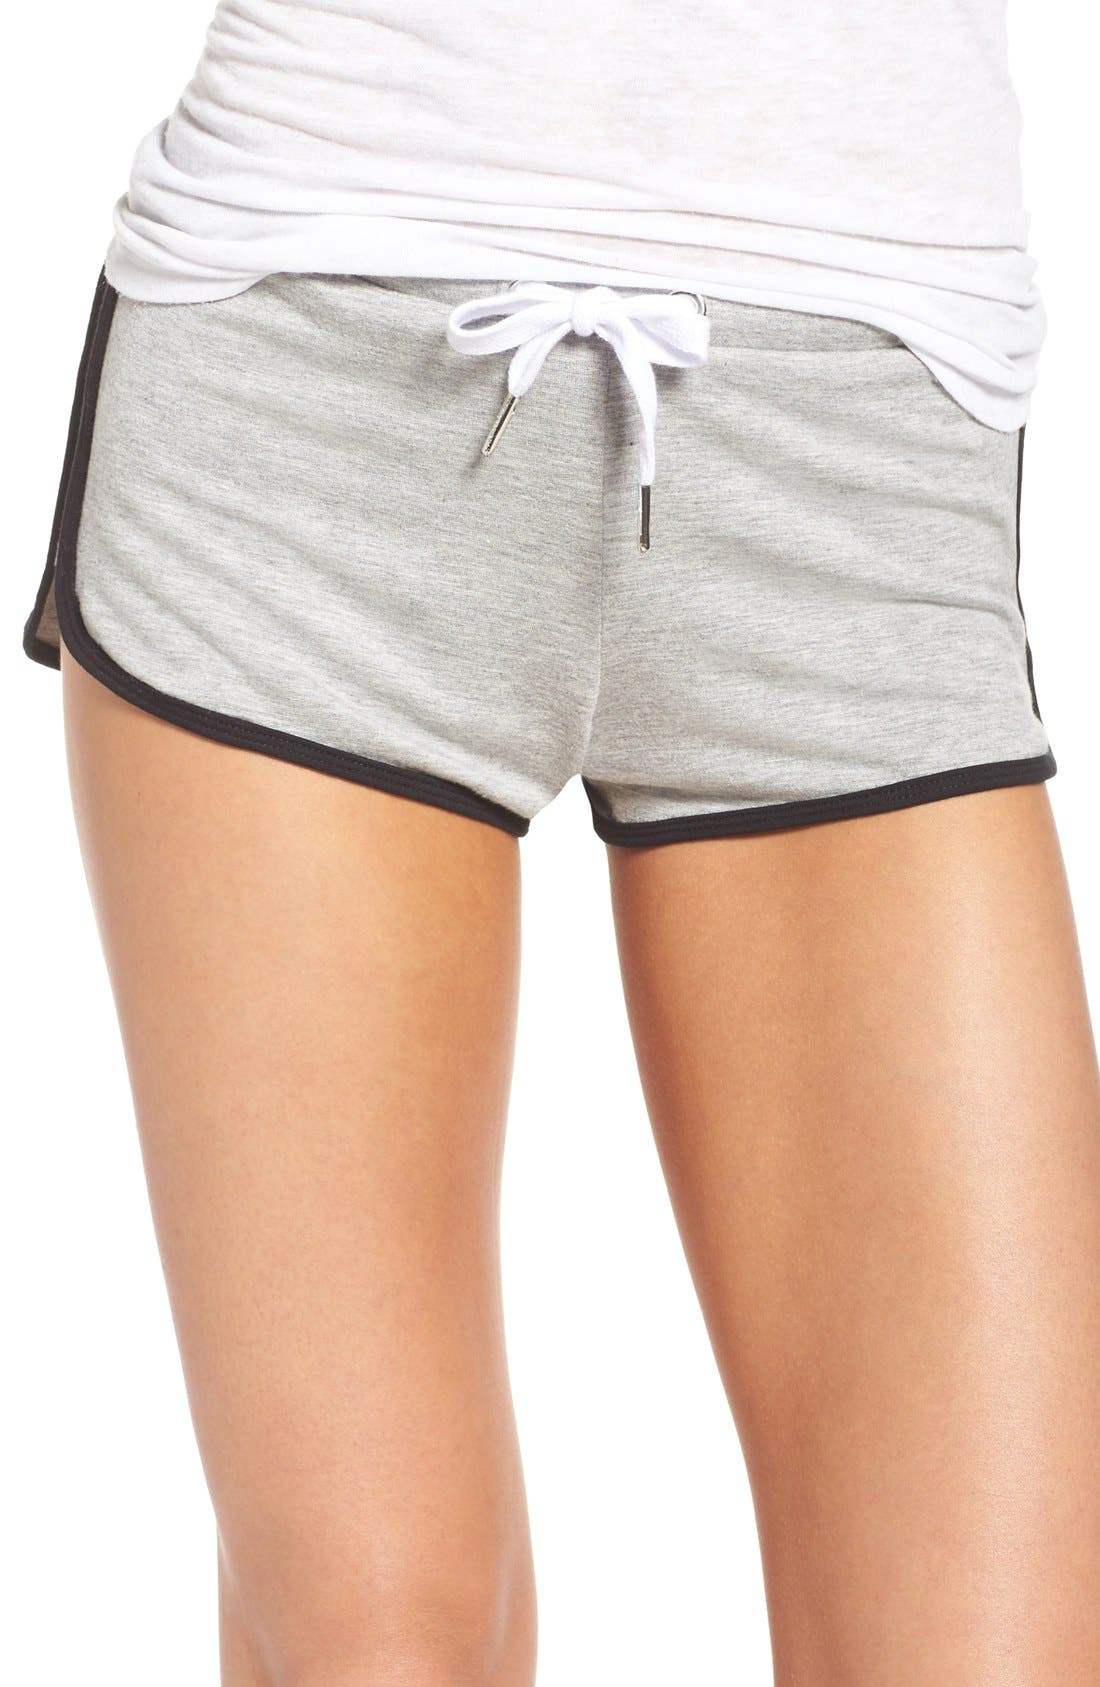 Lounge Shorts,                         Main,                         color, Heather